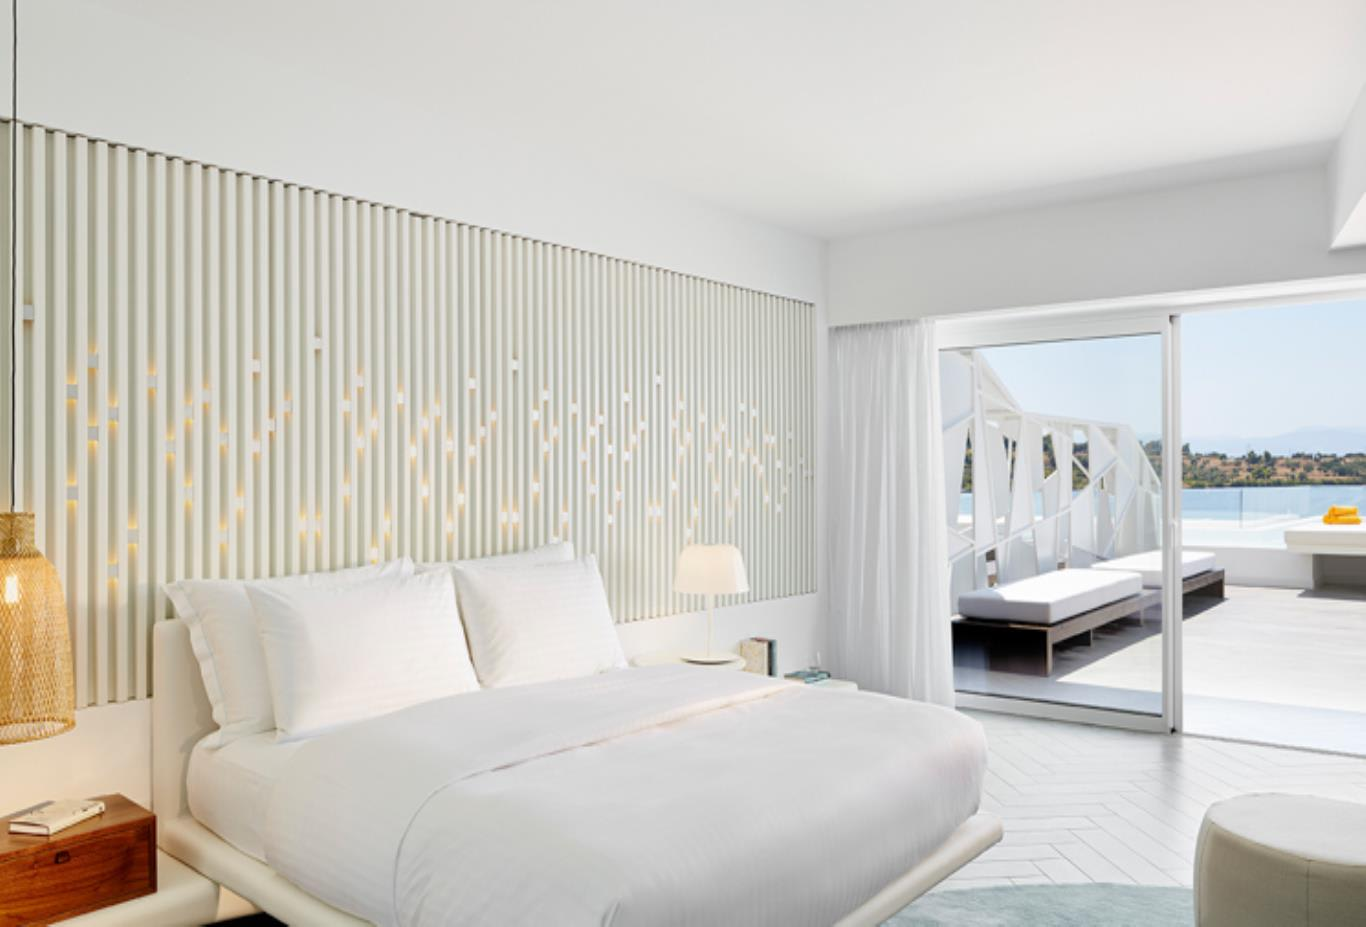 Luxx room with pool and sea view